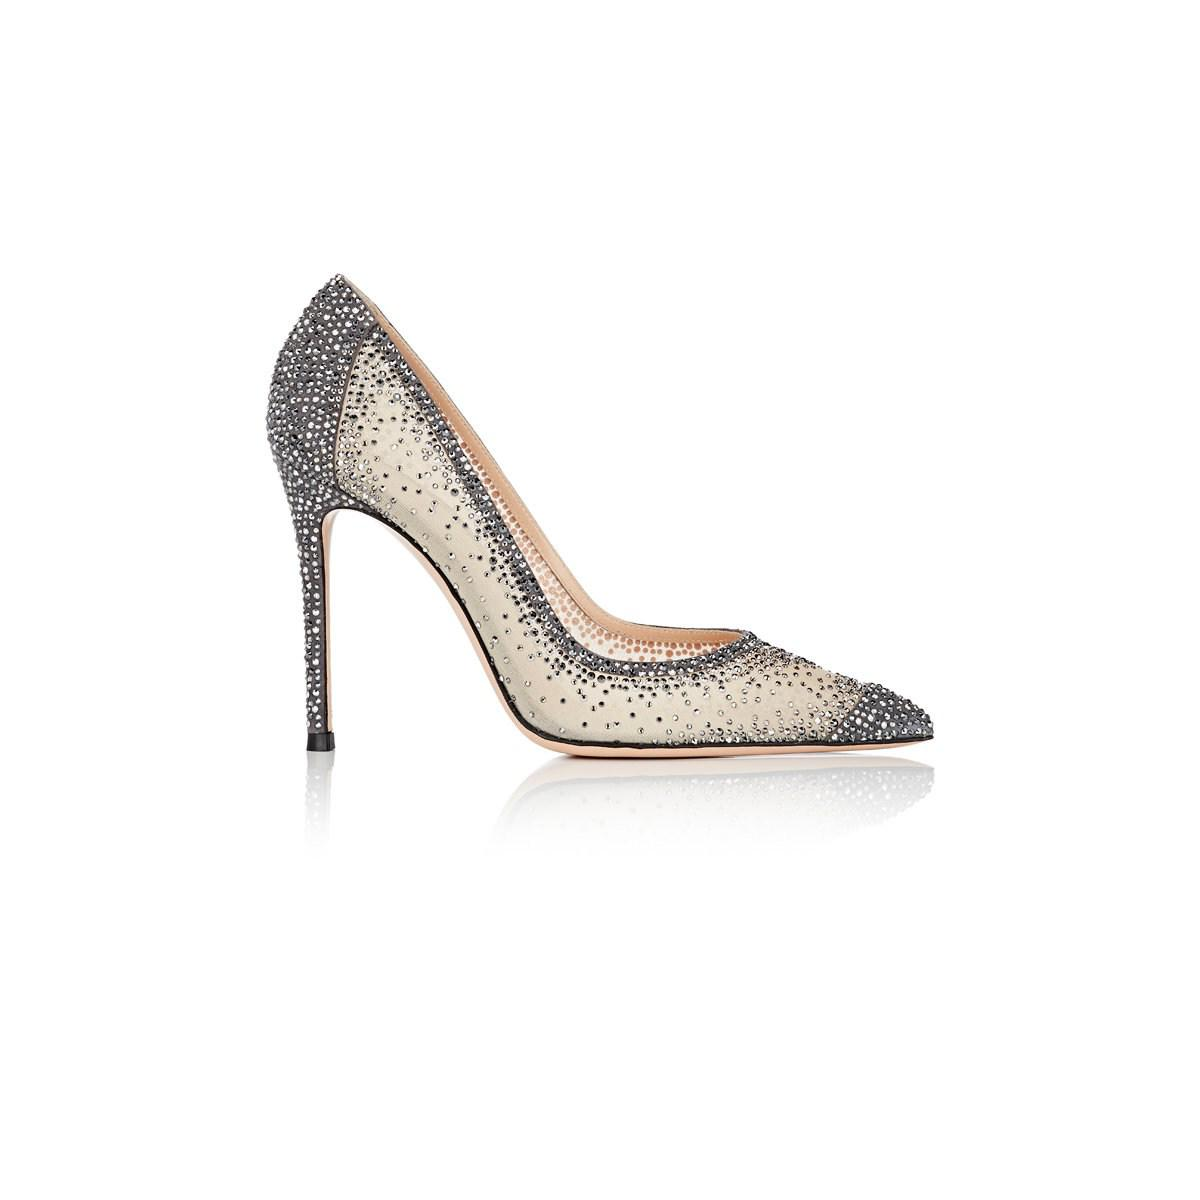 6a2c57c2918e Lyst - Gianvito Rossi Rania Crystal-embellished Pumps in Gray